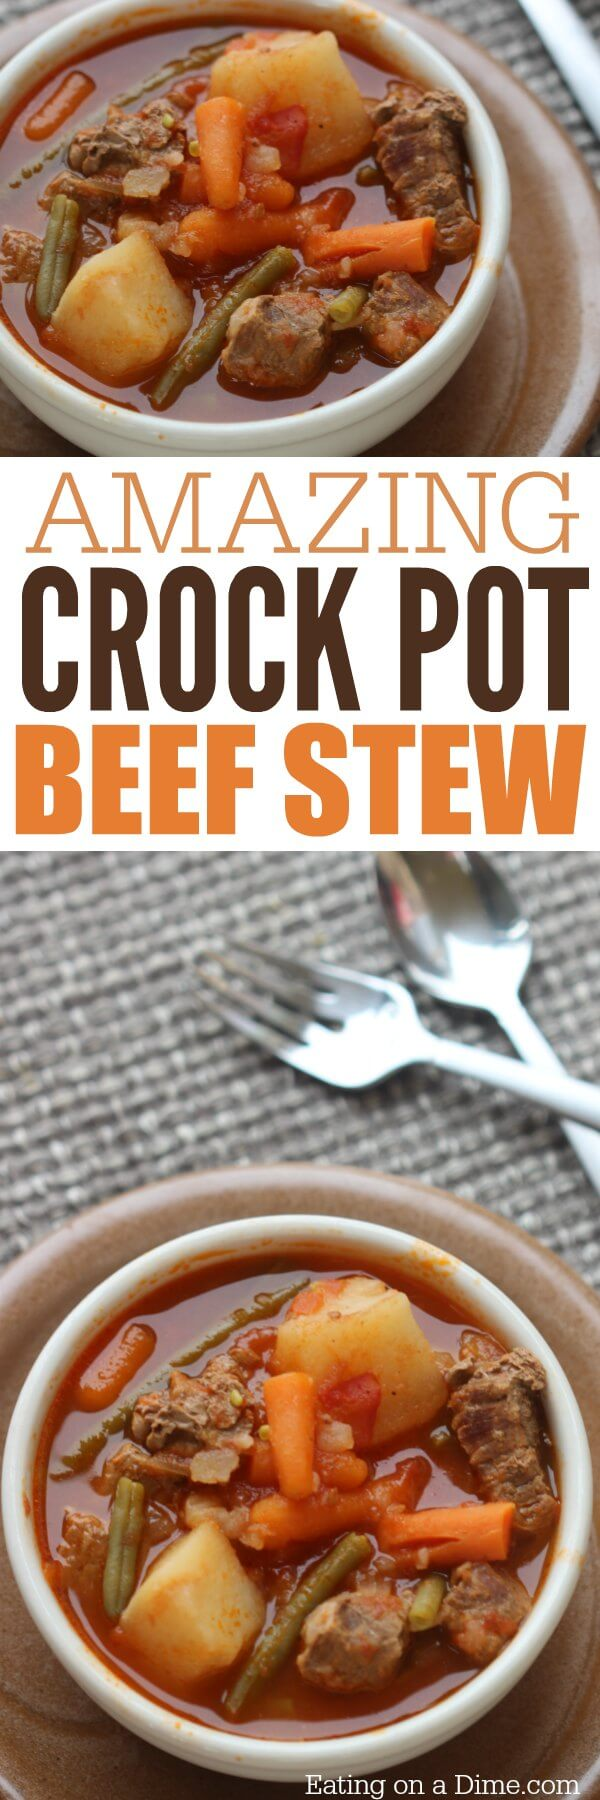 Quick Amp Easy Crock Pot Beef Stew Recipe Eating On A Dime